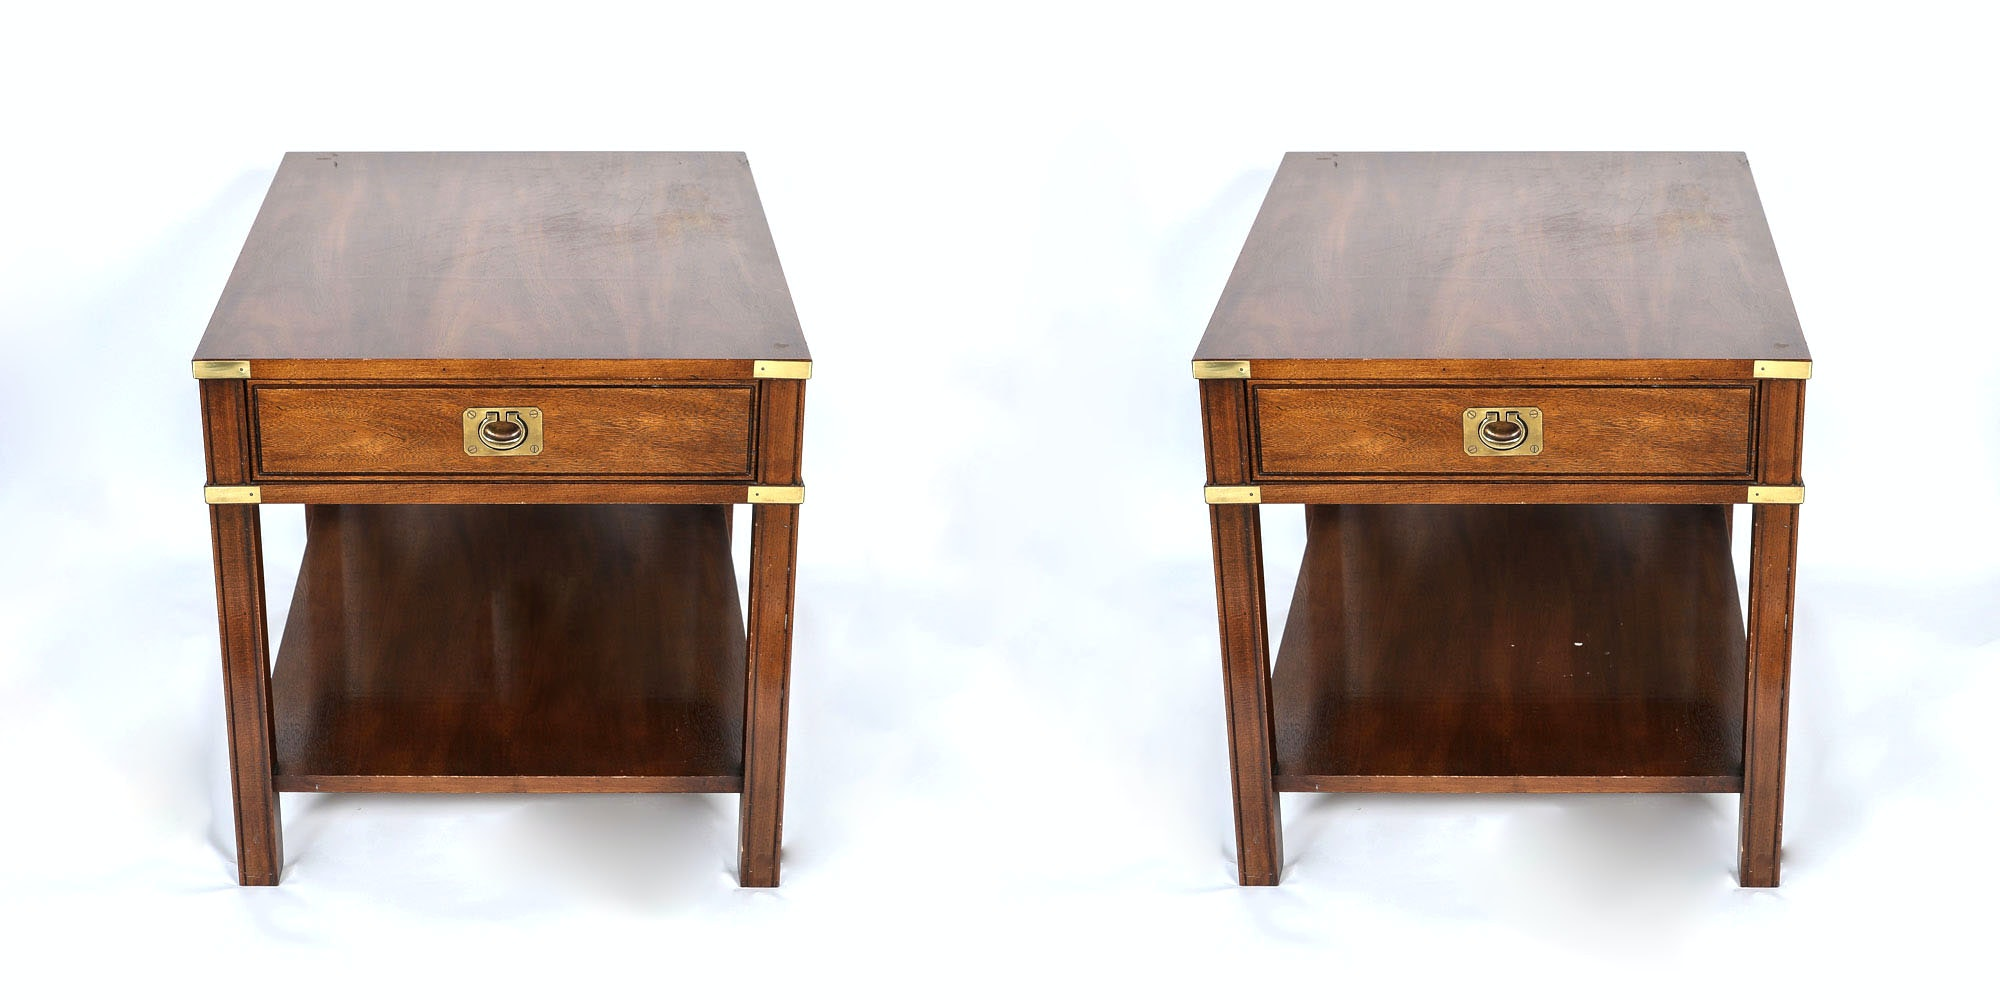 Merveilleux Vintage Campaign Style End Tables By Thomasville ...